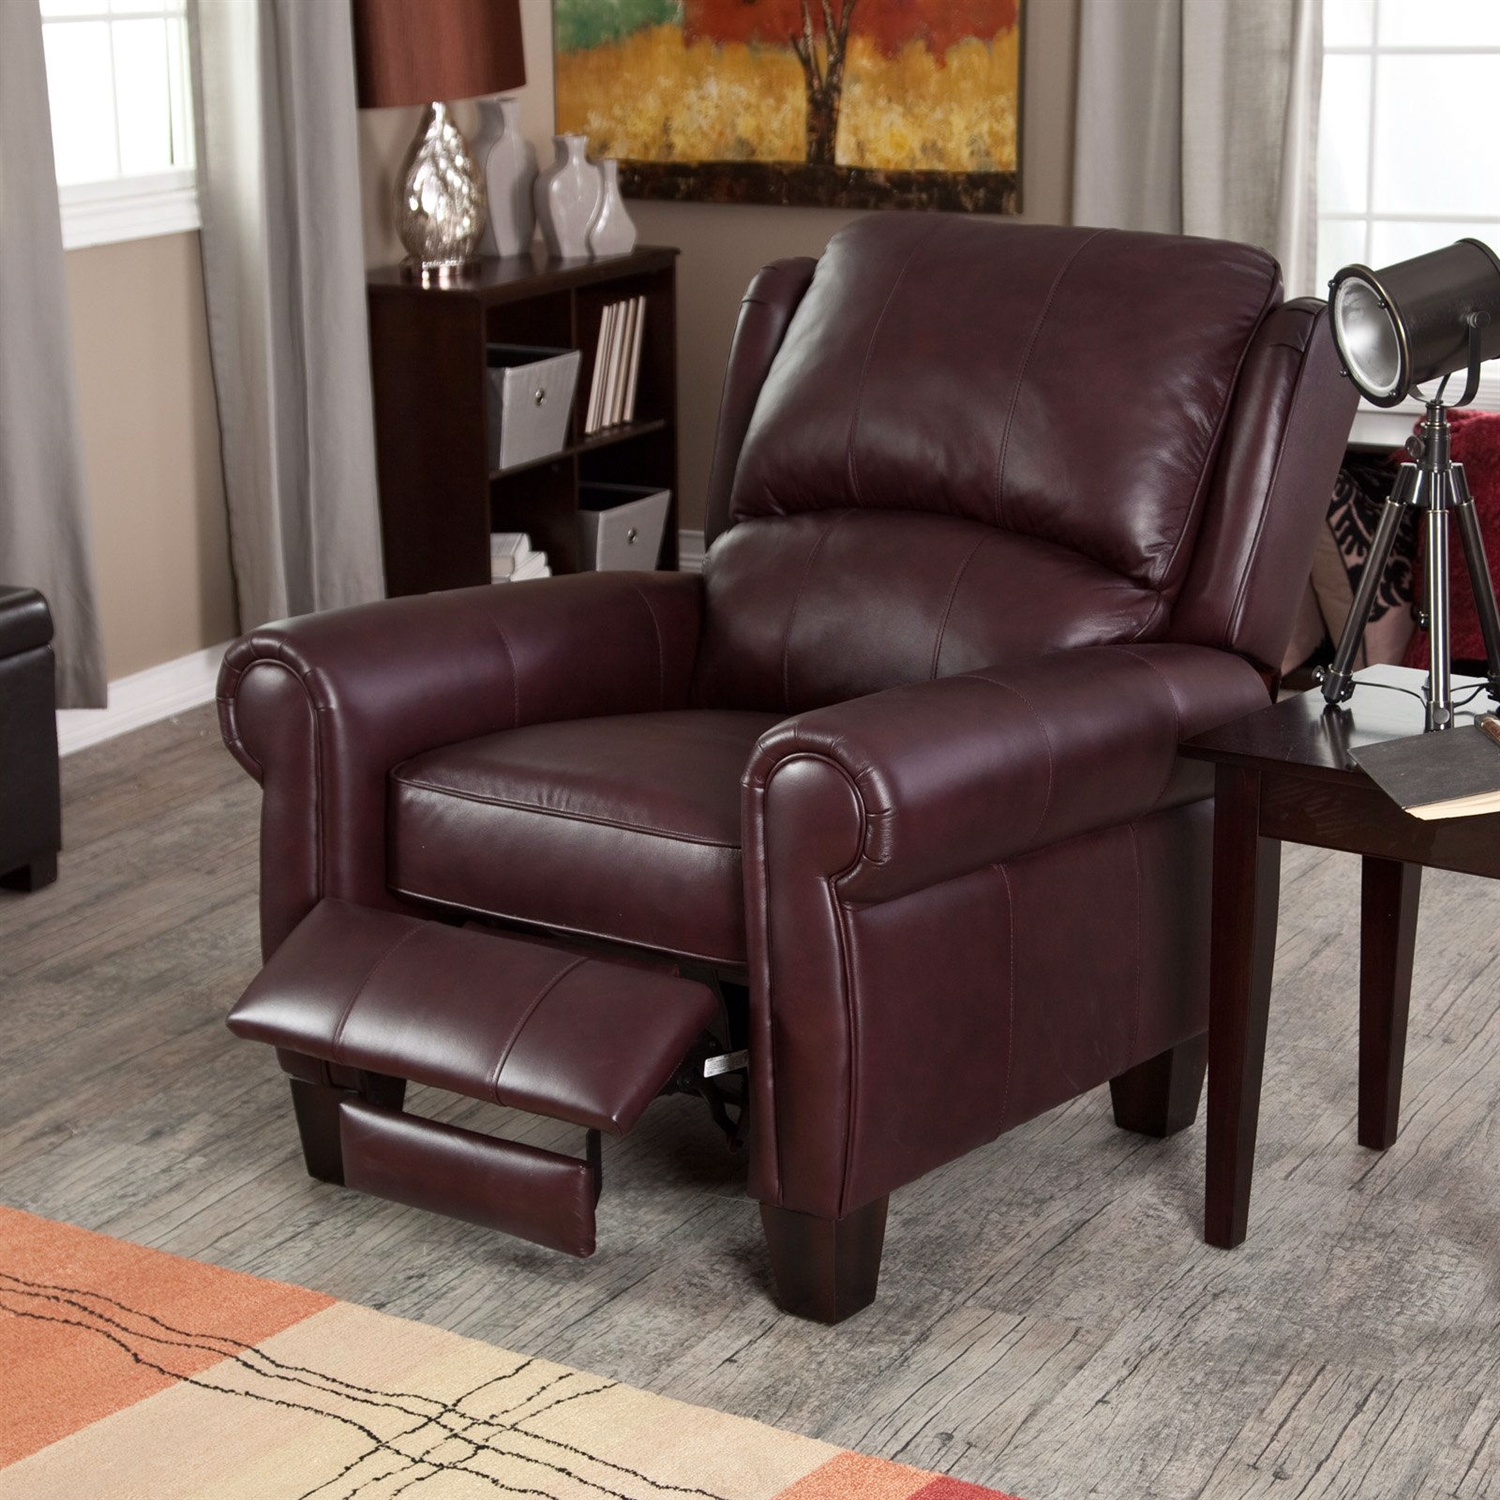 Top Grain Leather Club Chair Burgundy Top Grain Leather Upholstered Wing Back Club